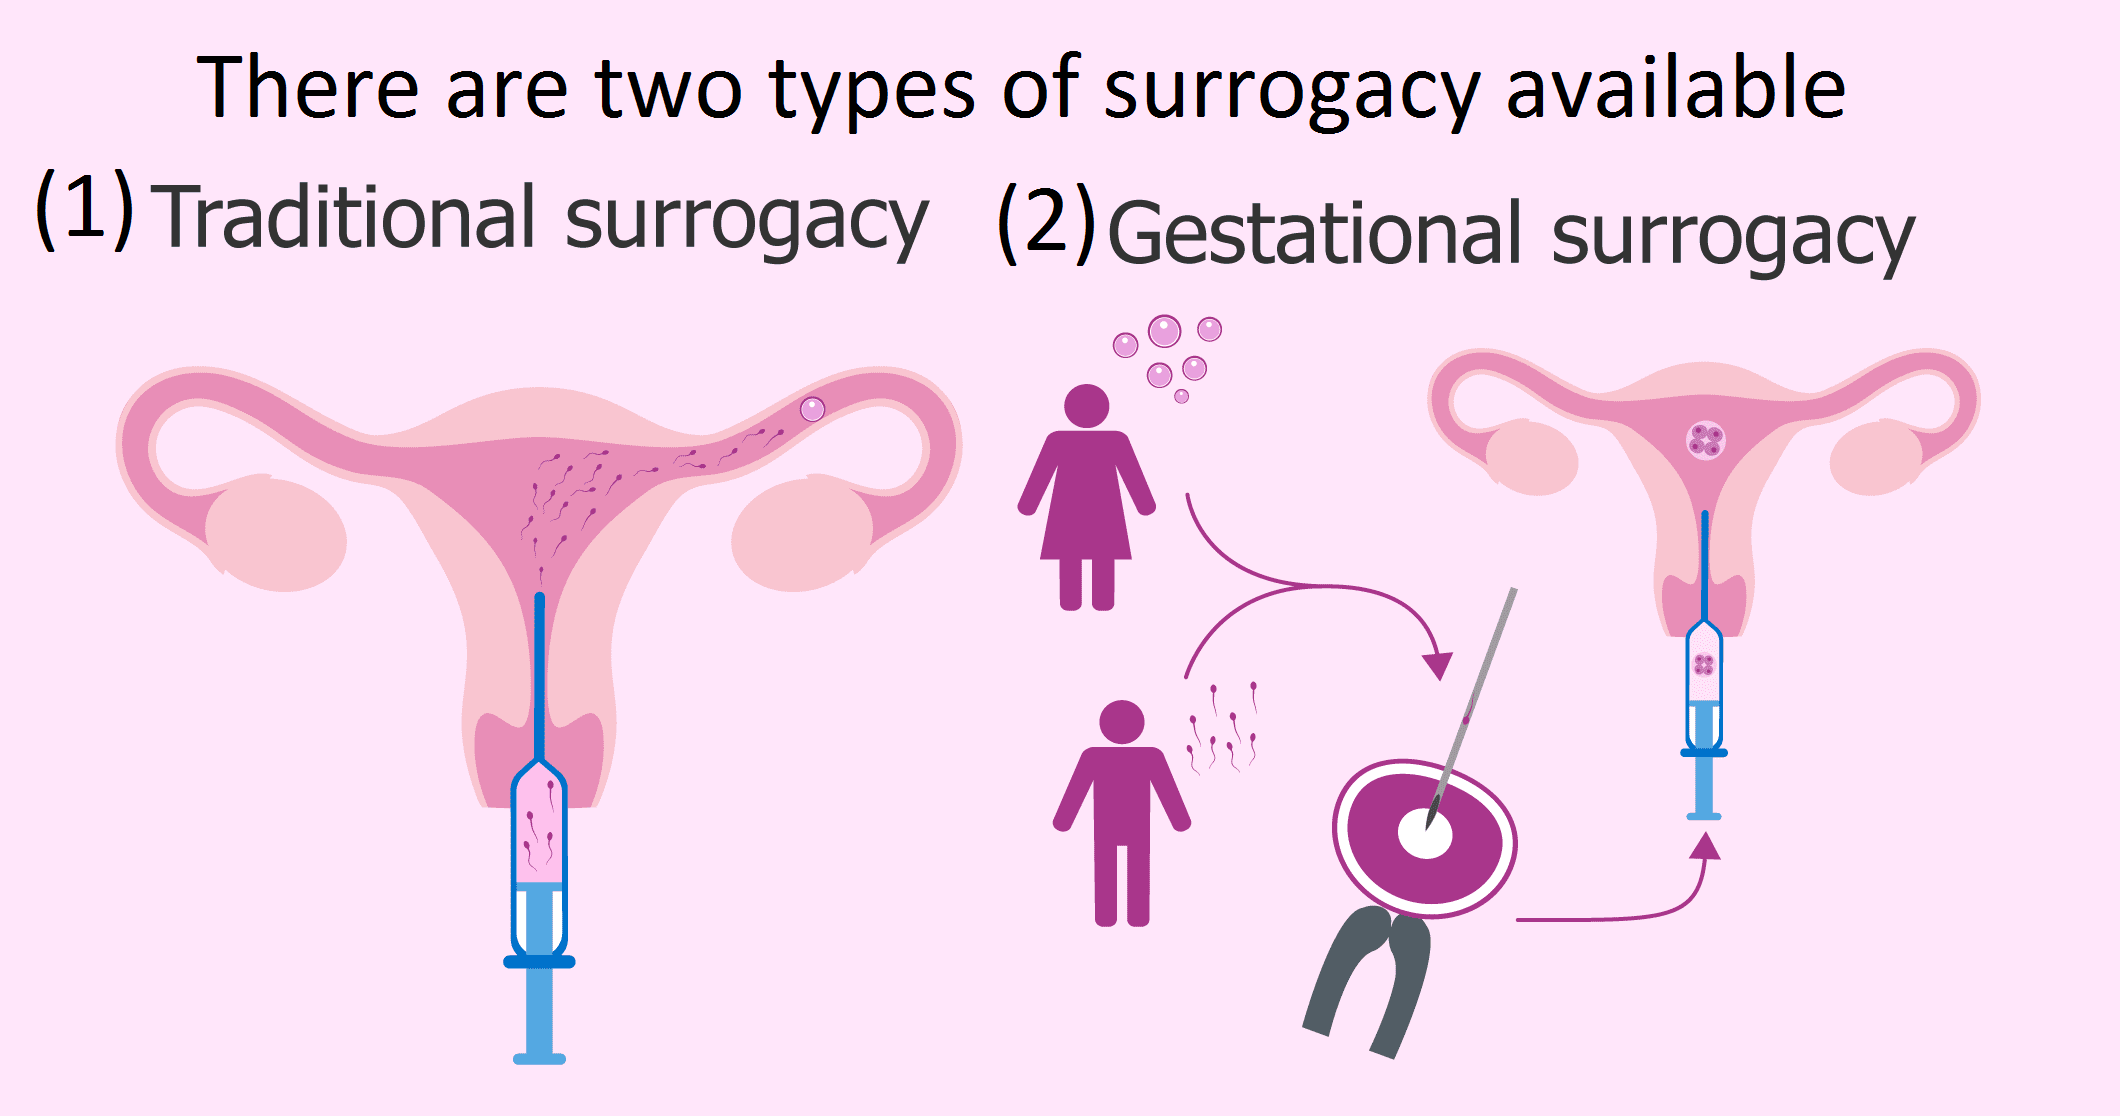 There are two types of surrogacy available